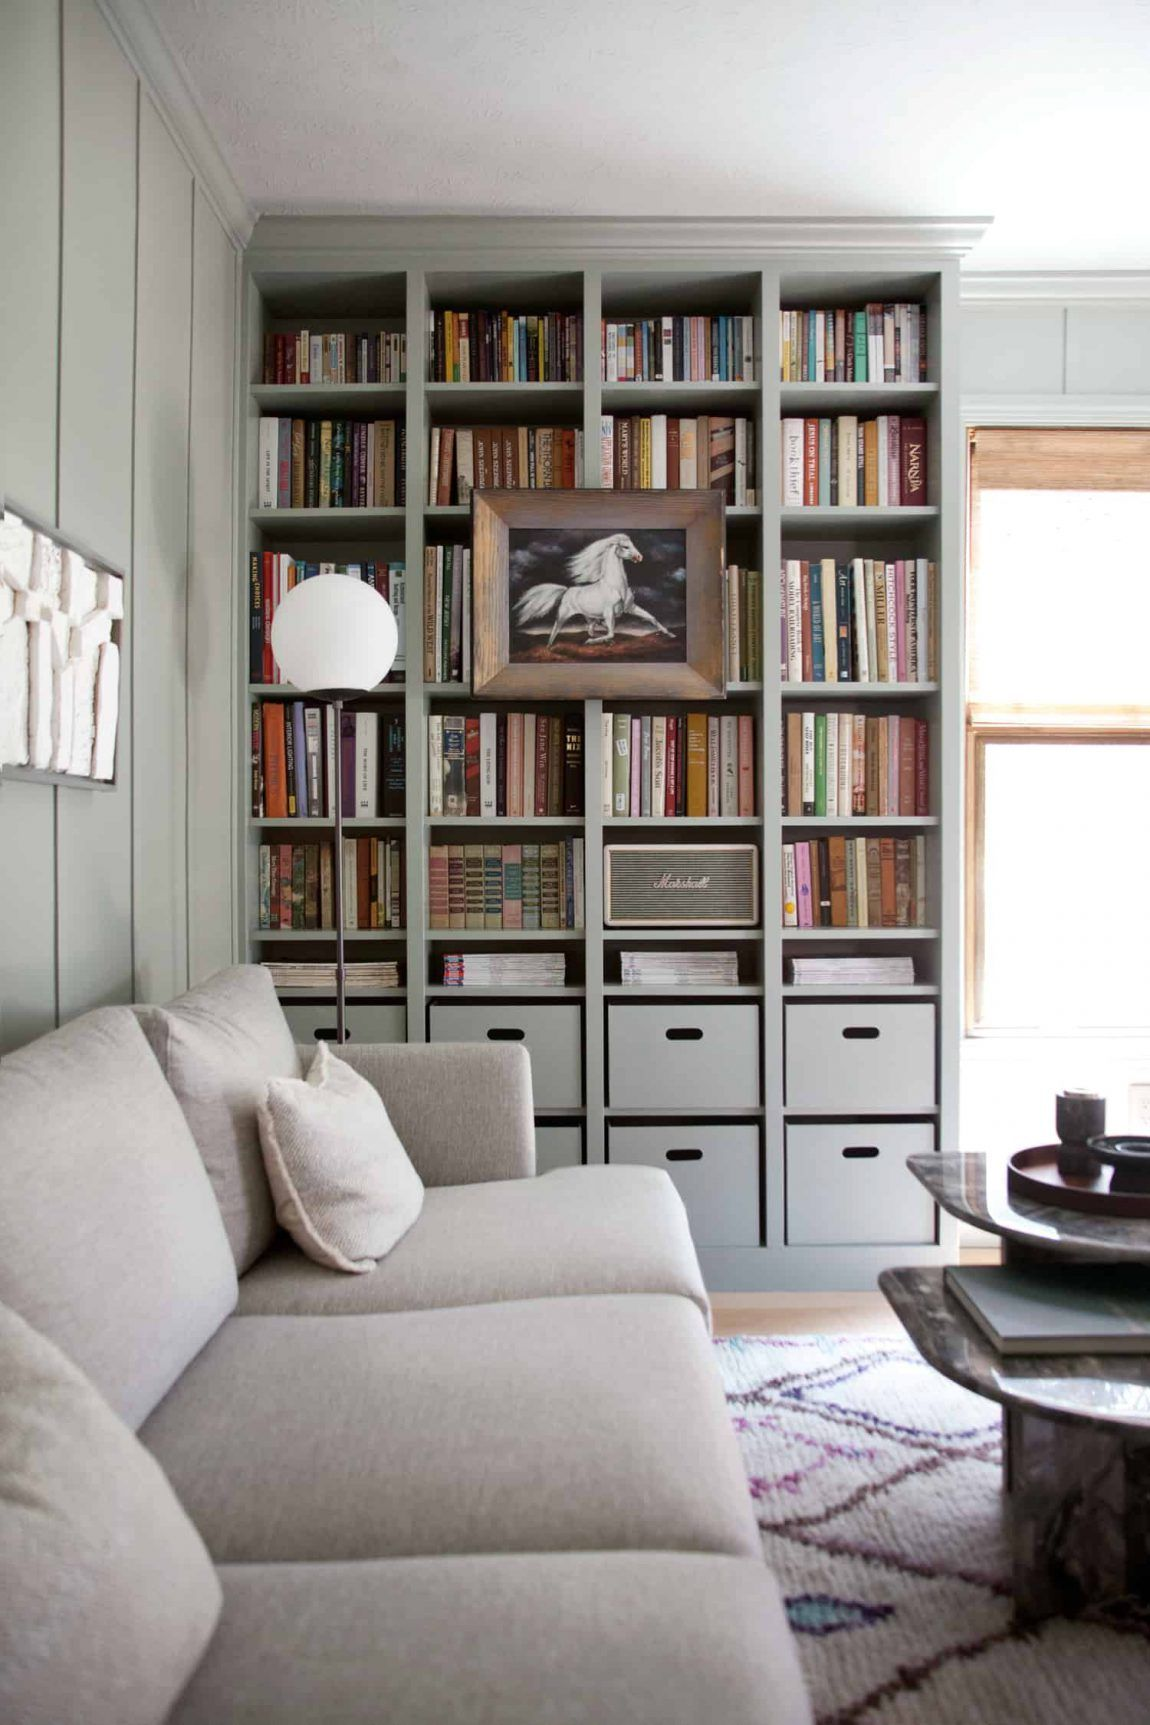 Ikea Hack Des Idees Pour Customiser Votre Bibliotheque Billy Frenchy Fancy Bibliotheque Ikea Ikea Bibliotheque Ikea Billy